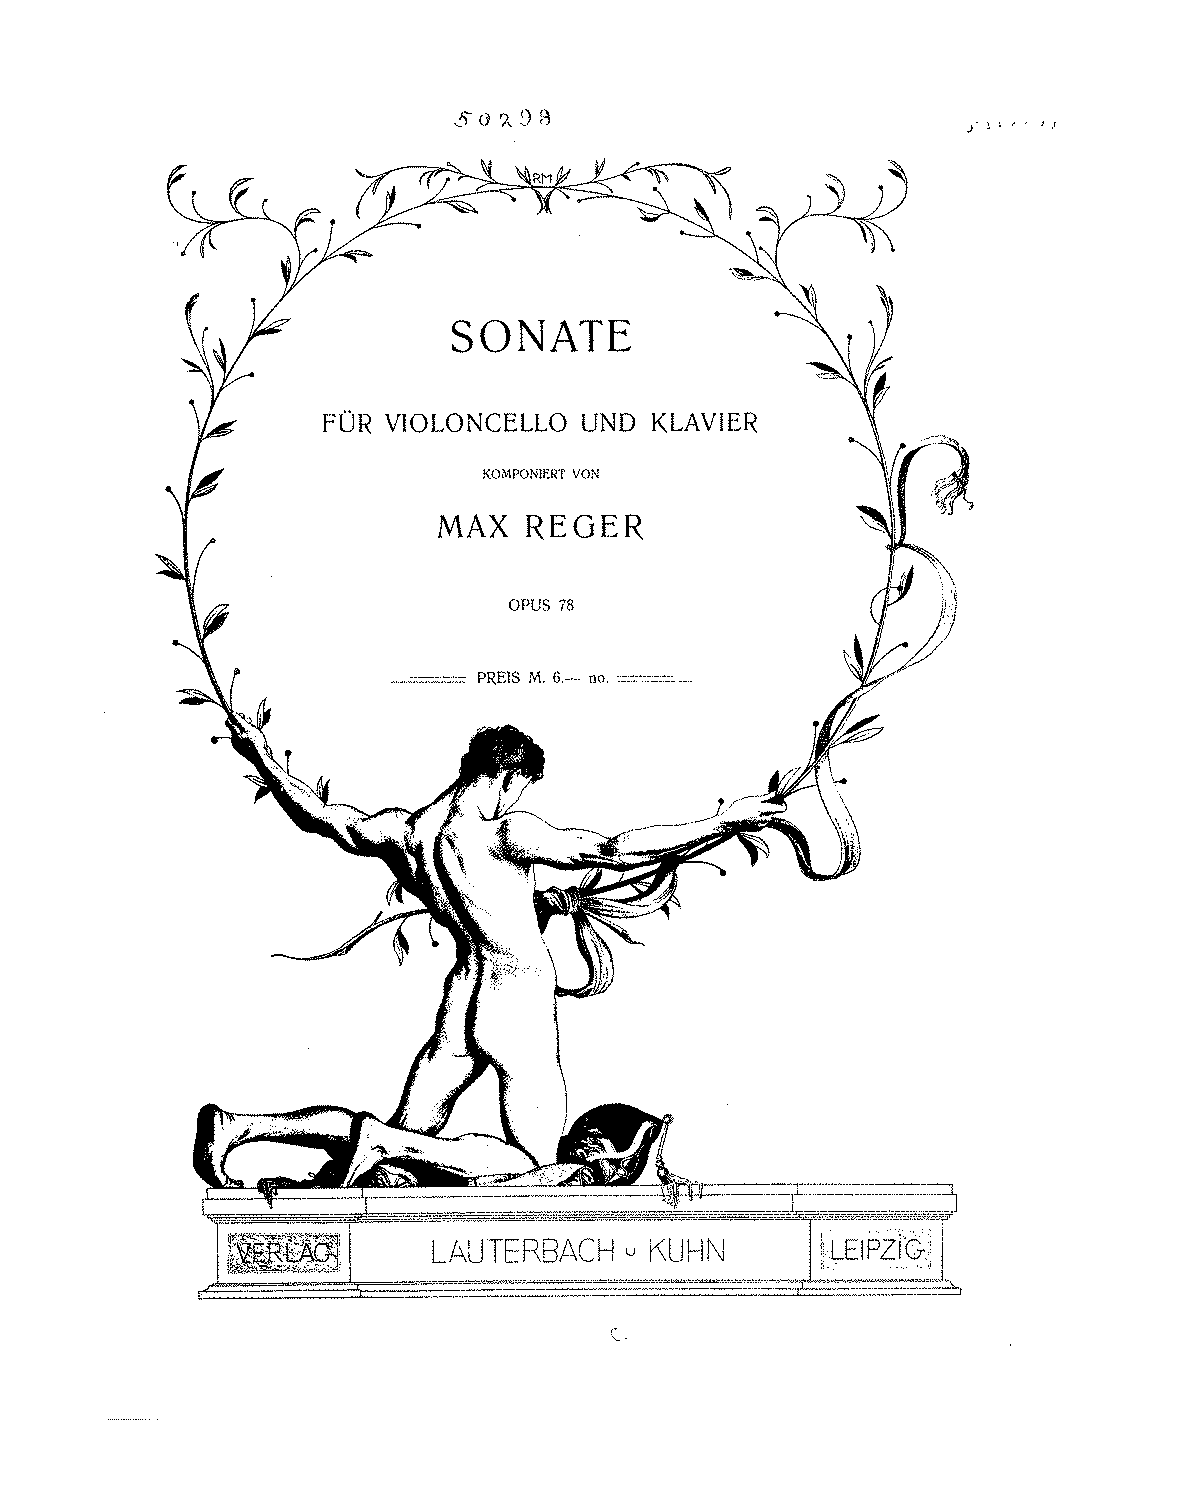 PMLP98043-Reger - Cello Sonata No3 Op78 in F major score.pdf